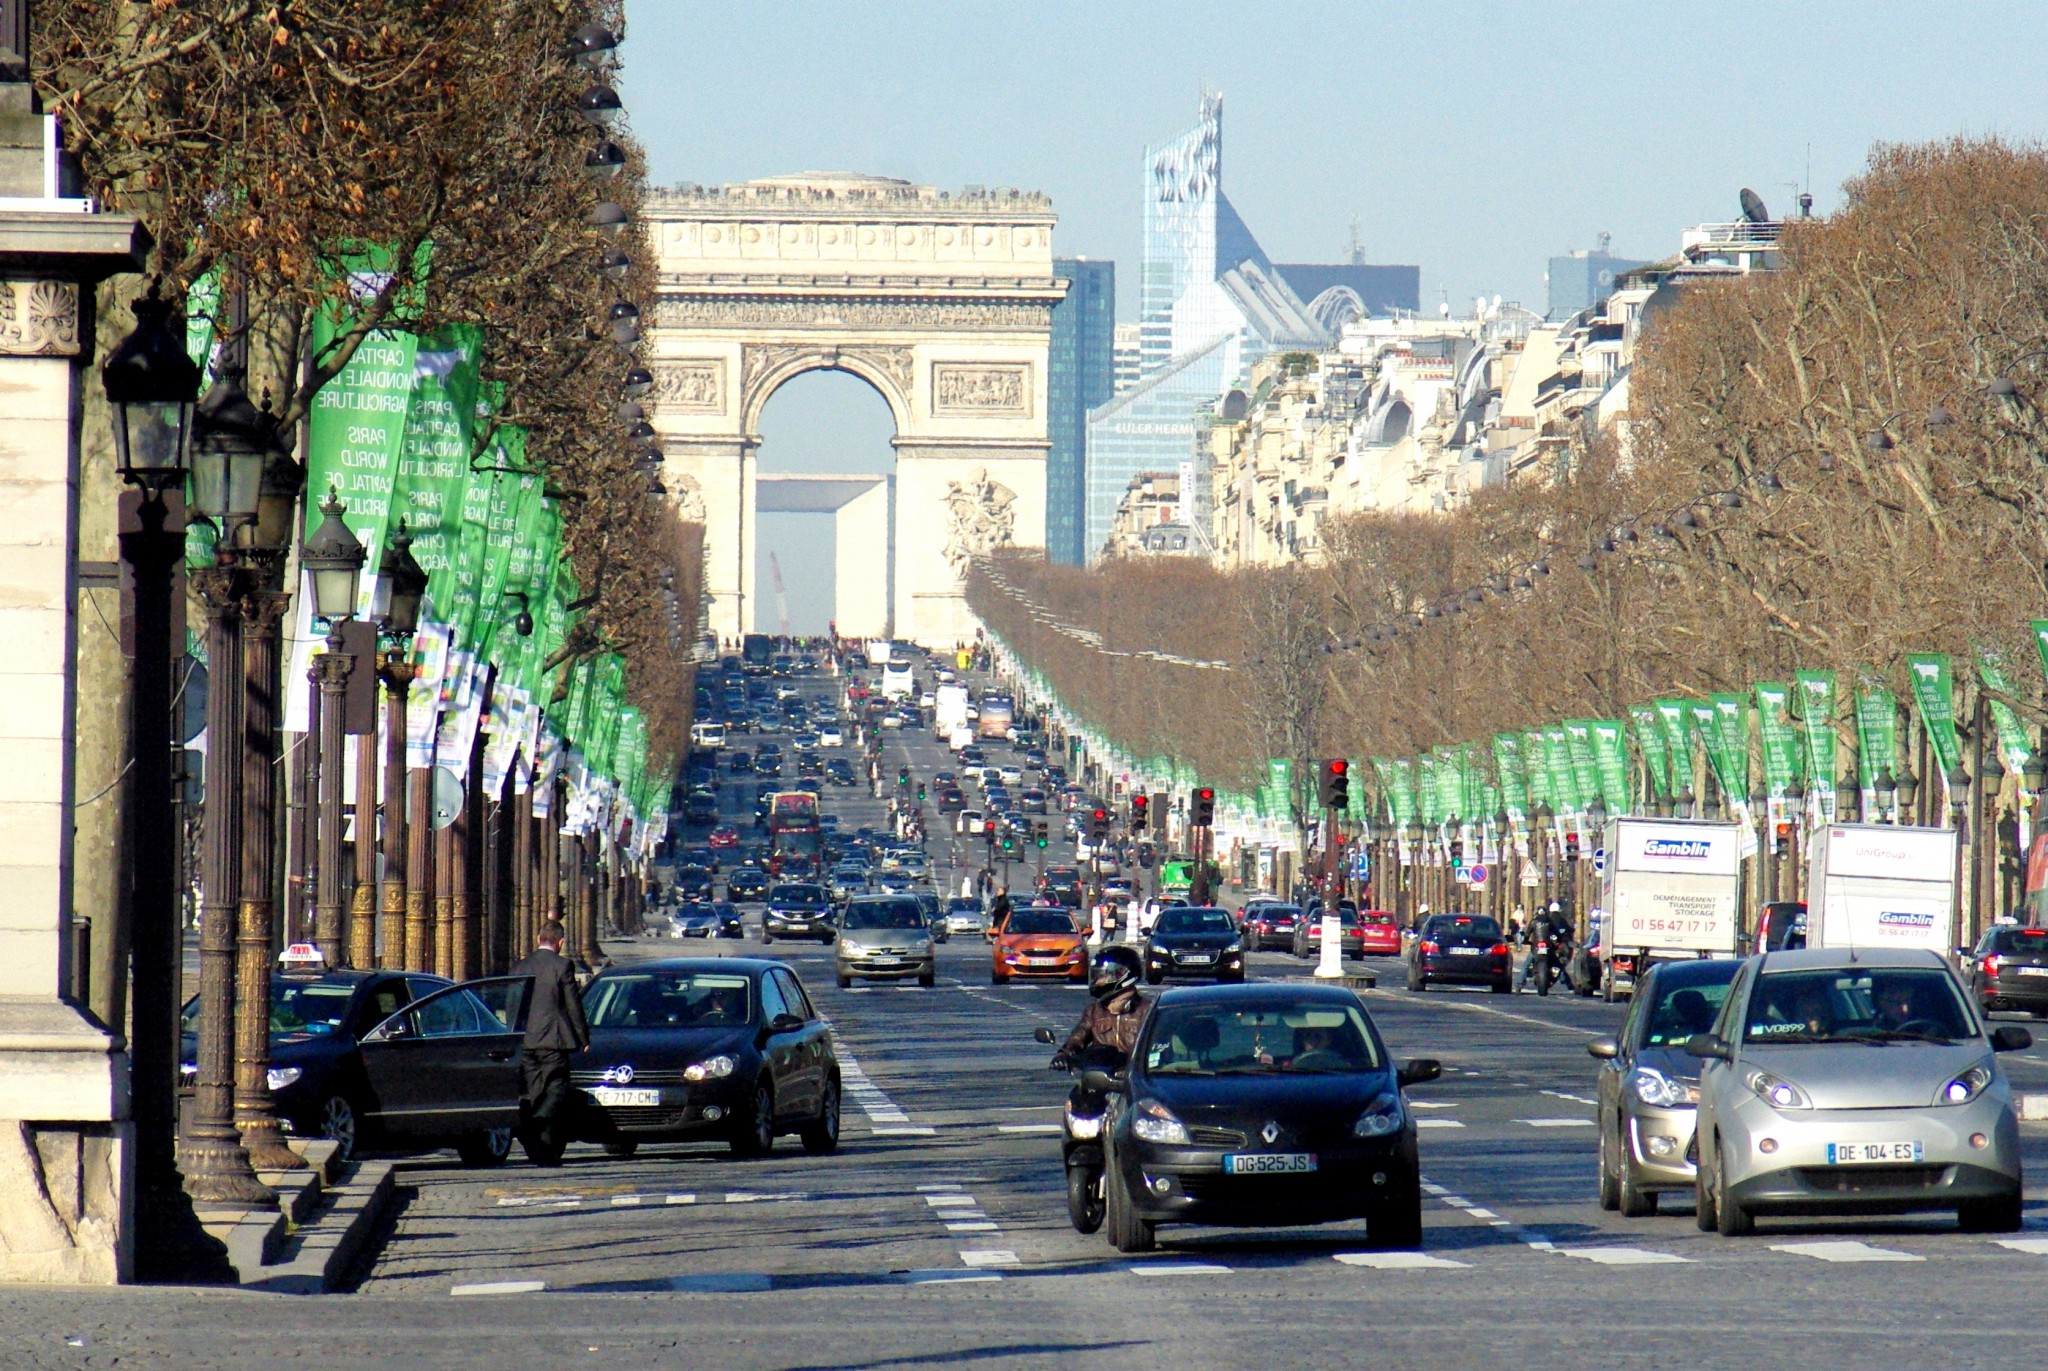 an analysis of the champs elysees in paris The champs-elysees in paris is one of the most historic and famous avenues in  the world originally commissioned to be built by louis xiv in.